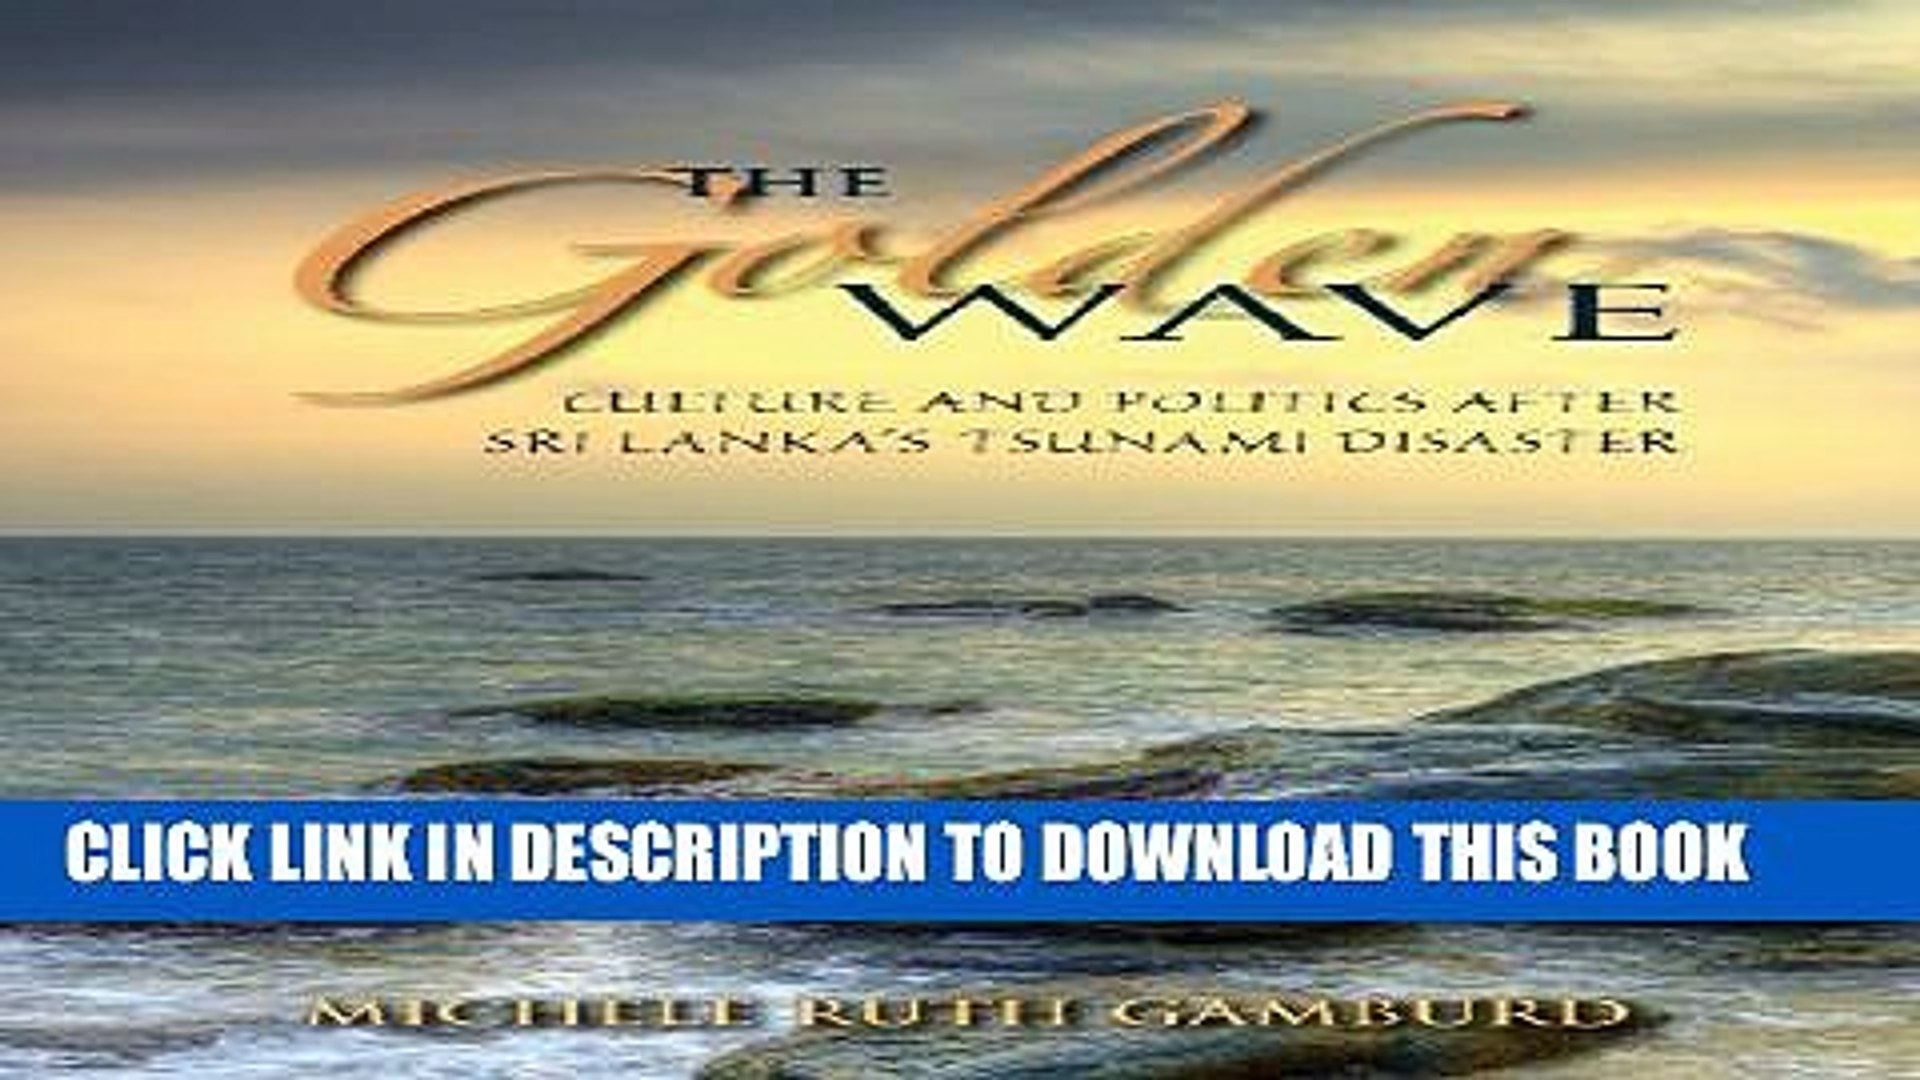 [Read PDF] The Golden Wave: Culture and Politics after Sri Lanka s Tsunami Disaster Download Online